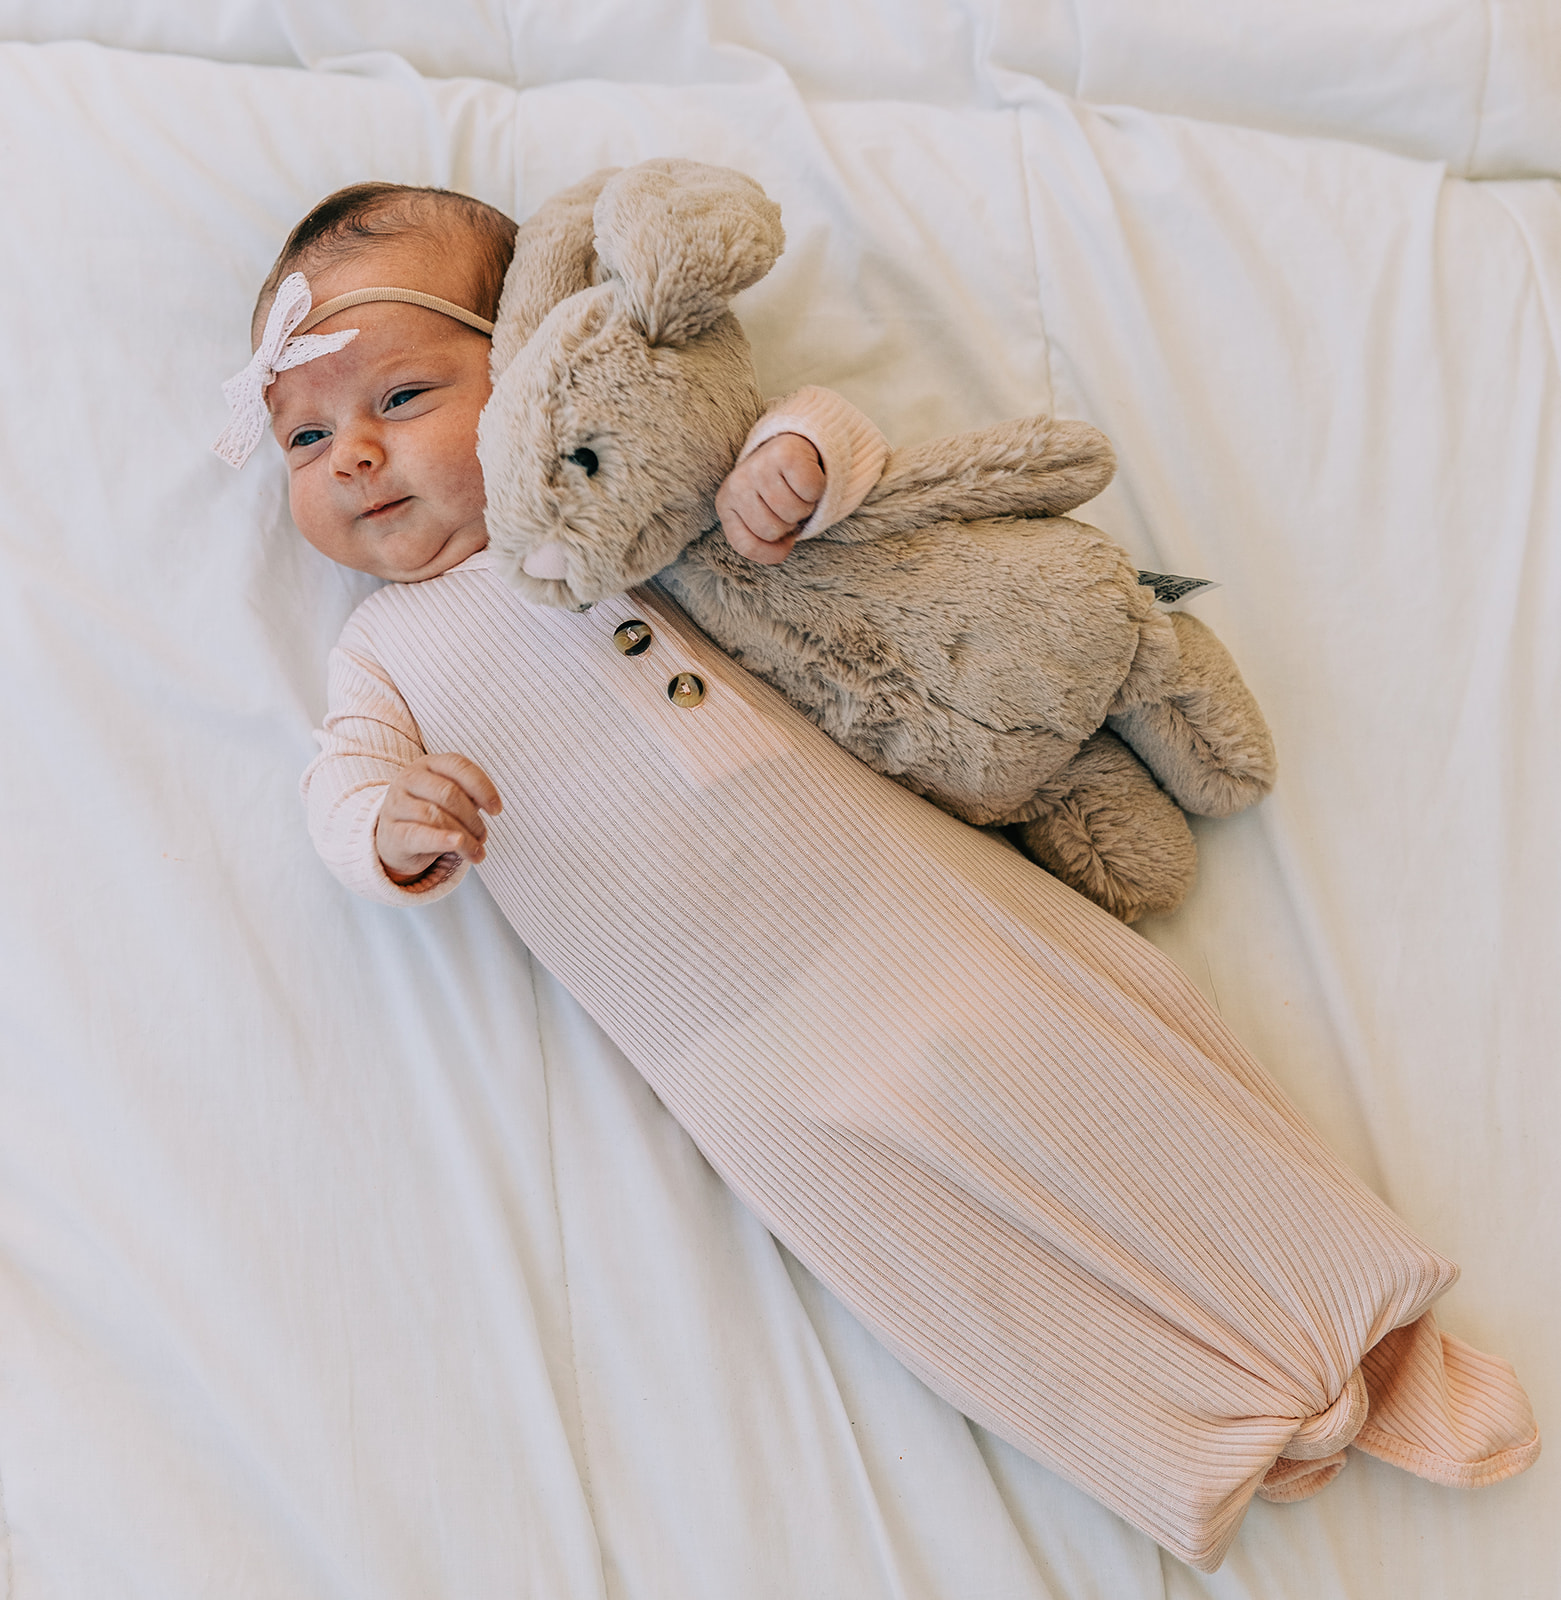 Bella Alder Photography captures this adorable shot of sweet baby girl Leighton with her bunny during her newborn session at Blush Door Studio in Logan, Utah | #bellaalderphoto #newbornphotographer #utahnewbornphotos #babygirlphotos #babygirl #blushdoorstudio #newbornsession #utahbabies #babyphotoshoot #newborns #newbornphotoprops #photostudio